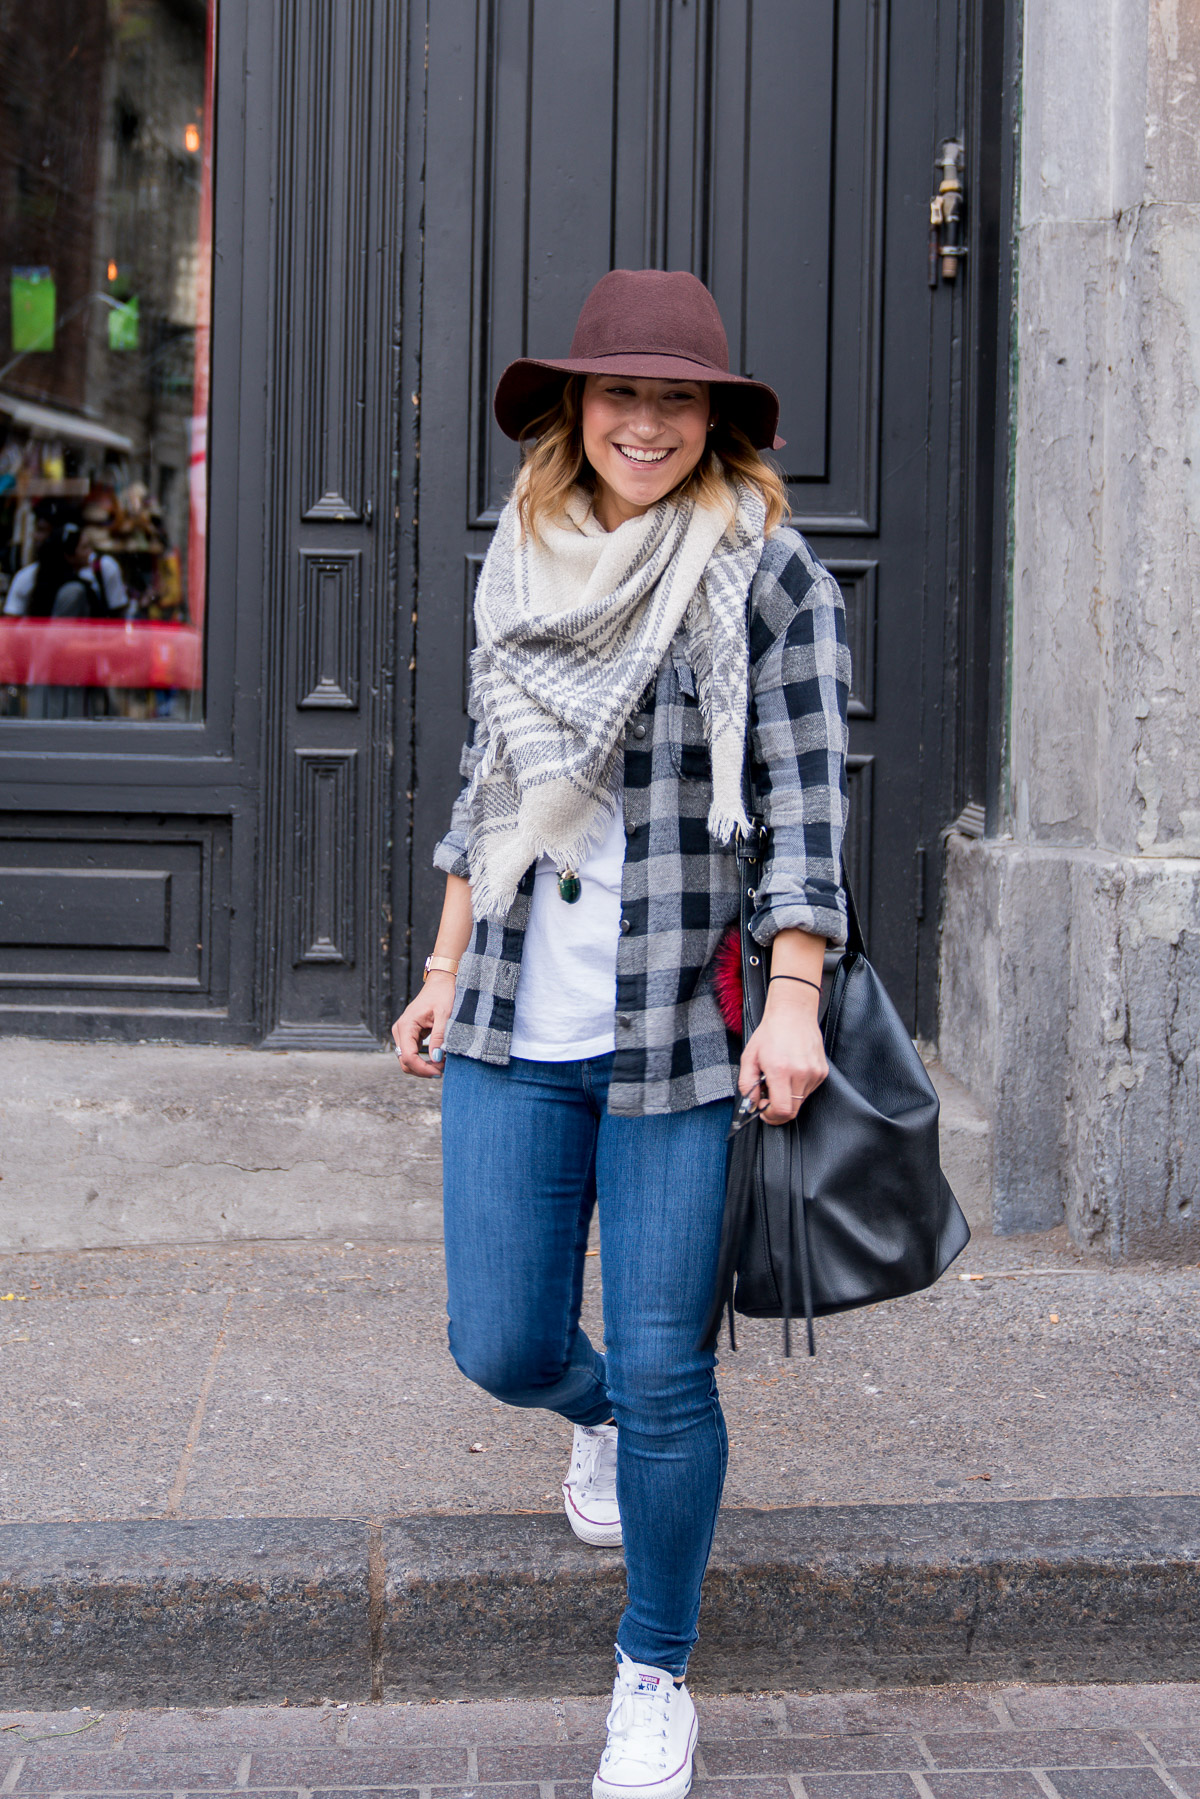 Jackie Goldhar is a petite-fashion and lifestyle blogger from Toronto, with an outfit mixing two different types of plaid with jeans